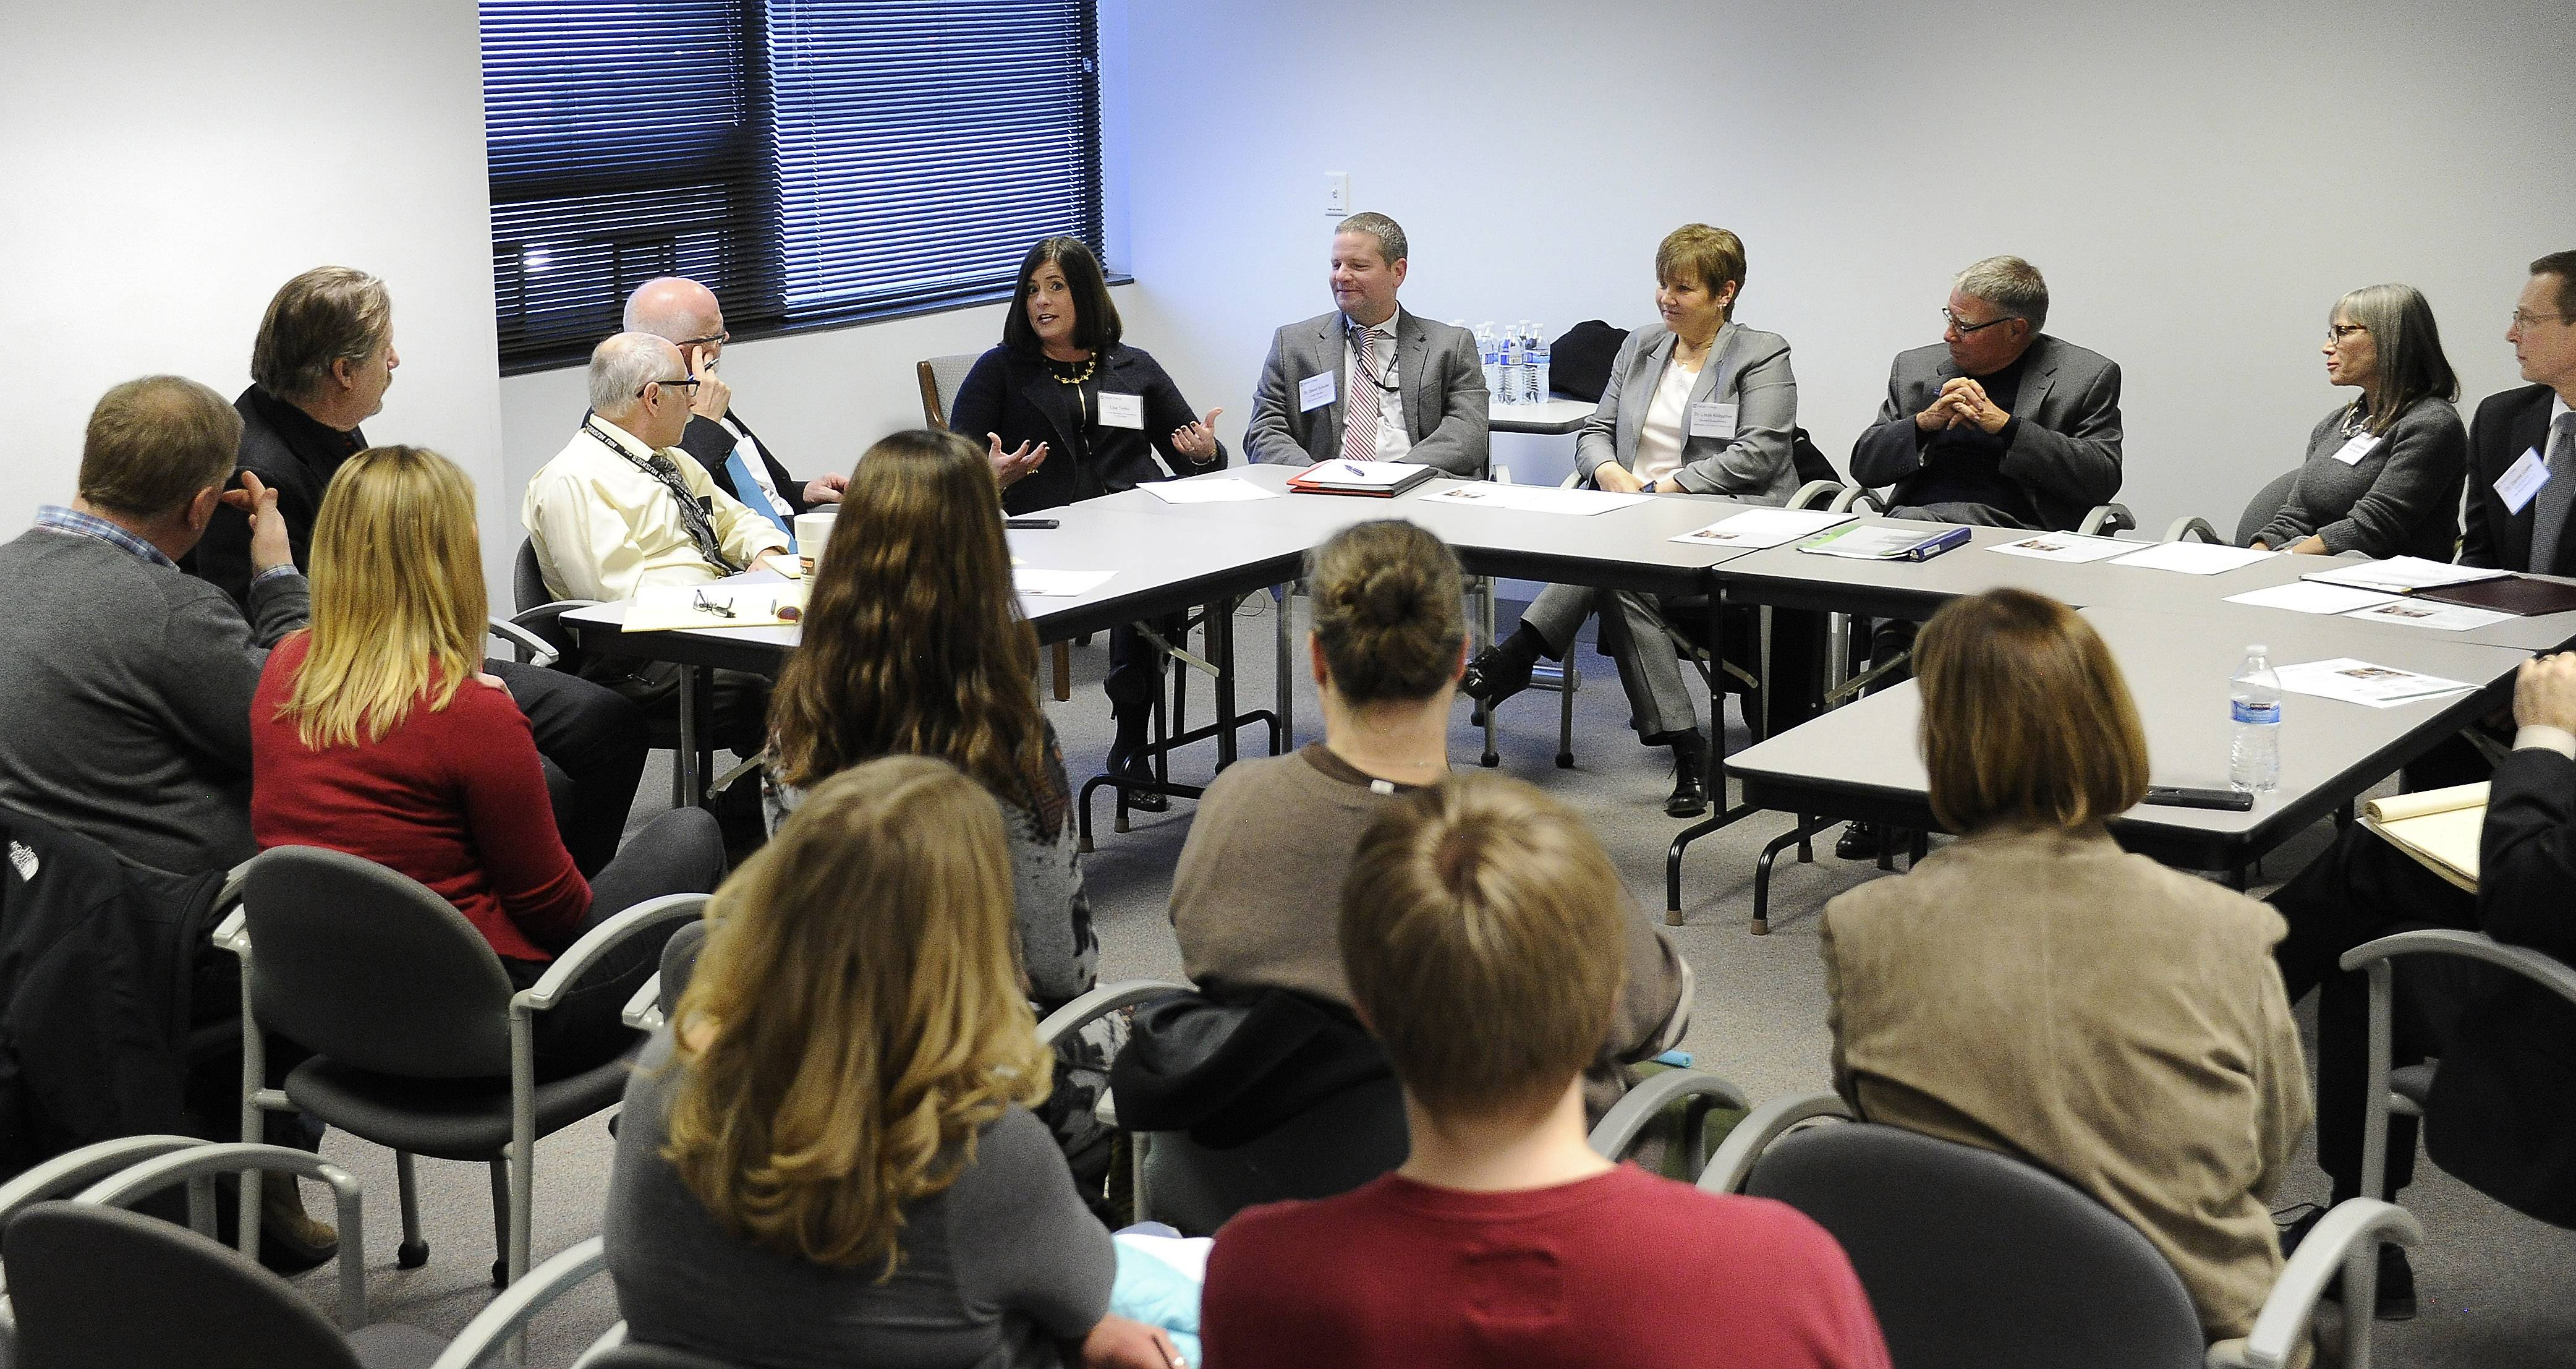 Harper College officials, school superintendents, donors, parents and students met with the Daily Herald editorial board this week to discuss the progress of Harper's Promise Scholarship program.